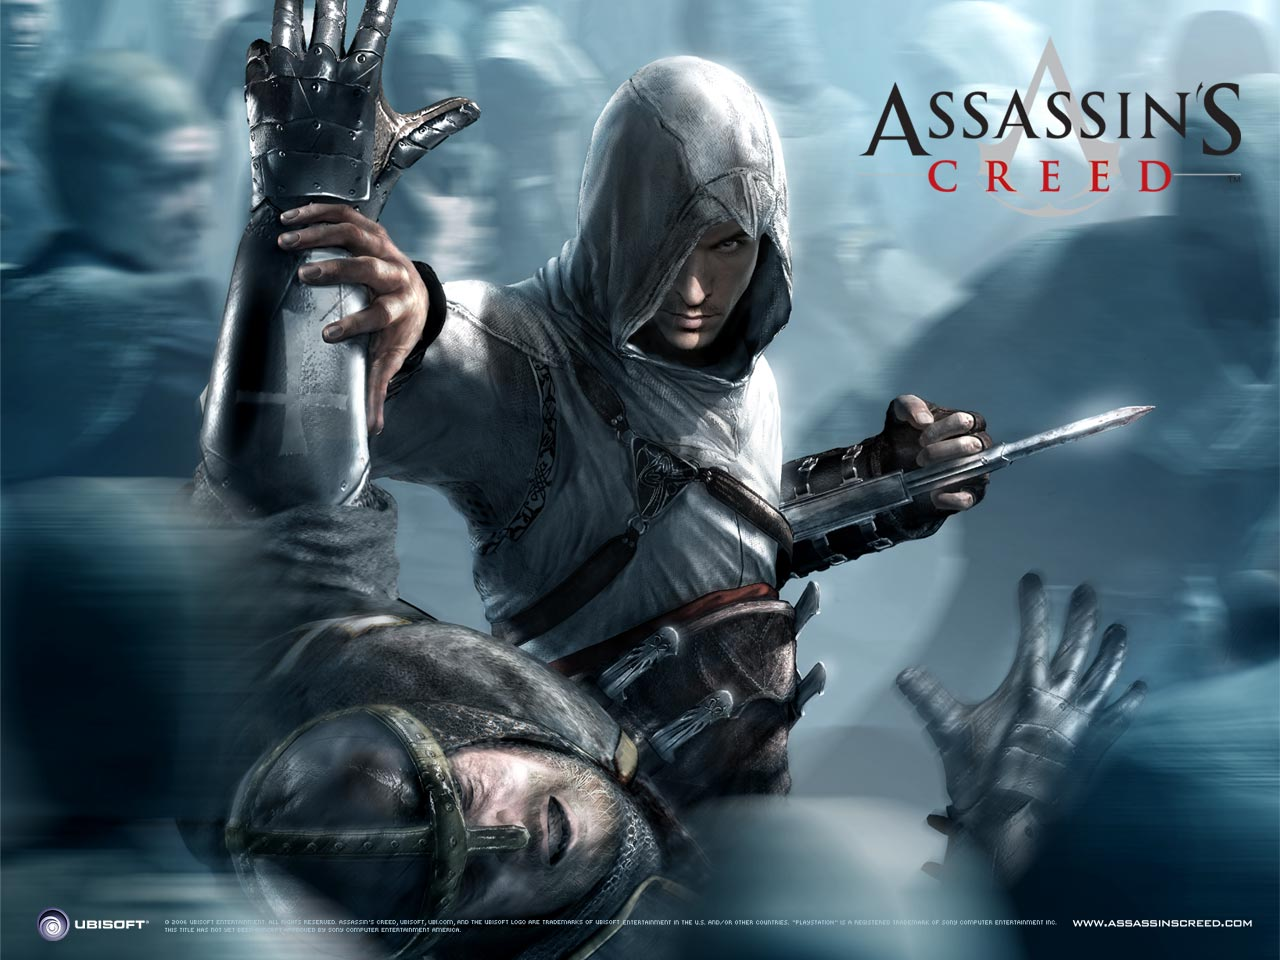 http://3.bp.blogspot.com/_tfv2hxvU3WE/TU3TyI_XYyI/AAAAAAAAChY/xt3nYX5qICE/s1600/Assassins_creed+wallpaper.jpg